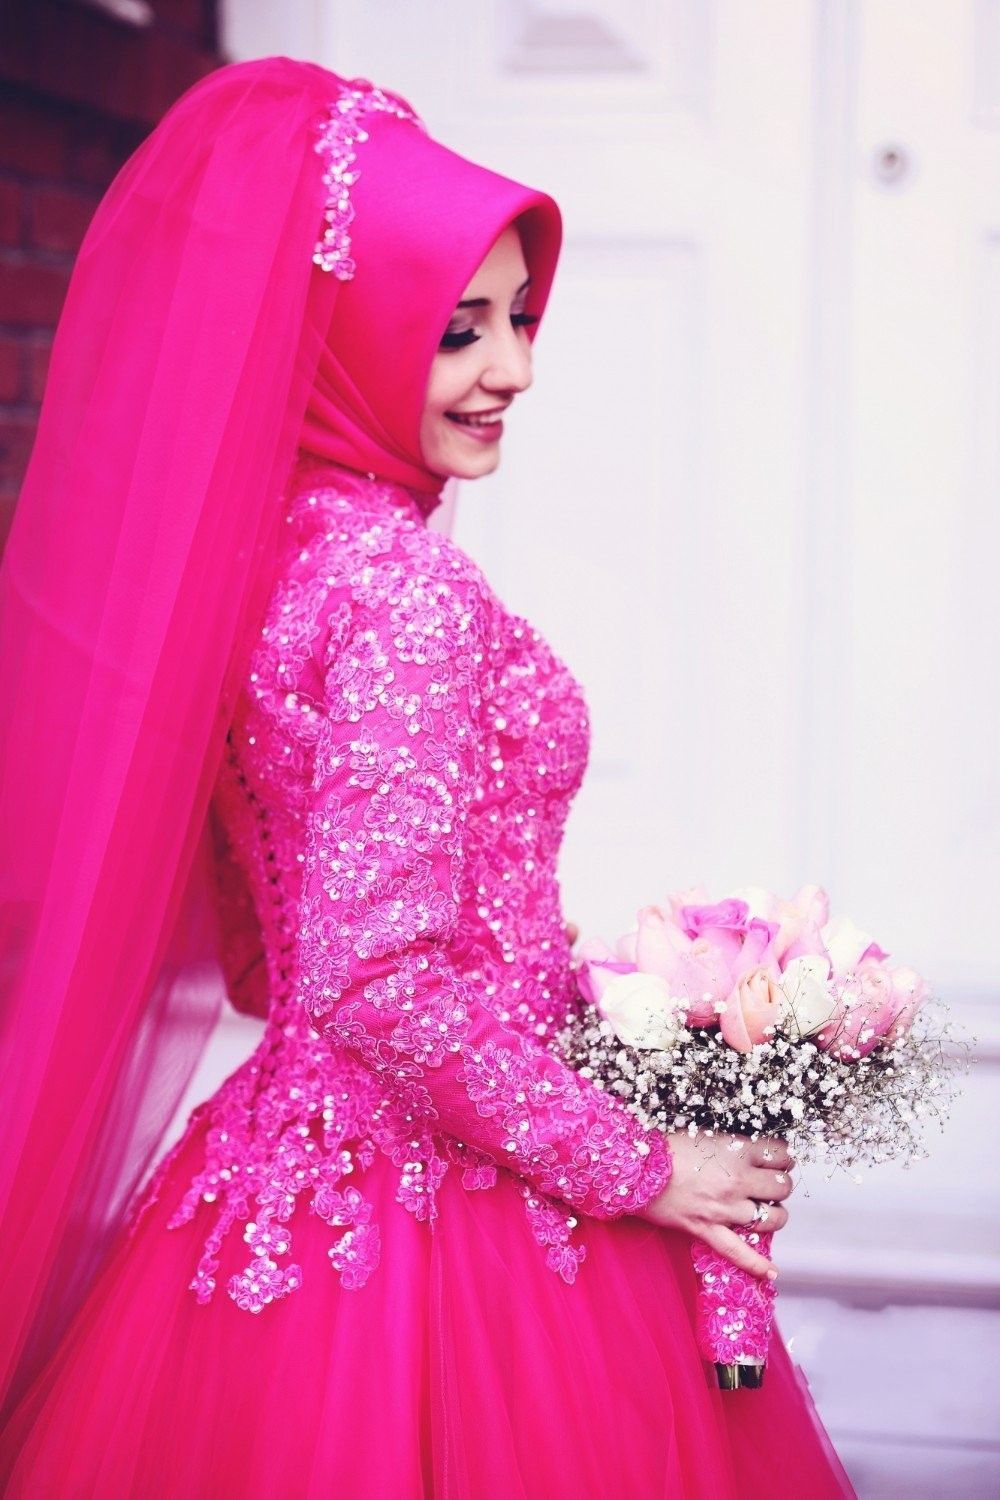 Fuchsia Islamic Muslim Wedding Dresses High Neck Long Sleeves Puffy  Colorful Wedding Gowns Lace Appliques 41d1bd52cf22